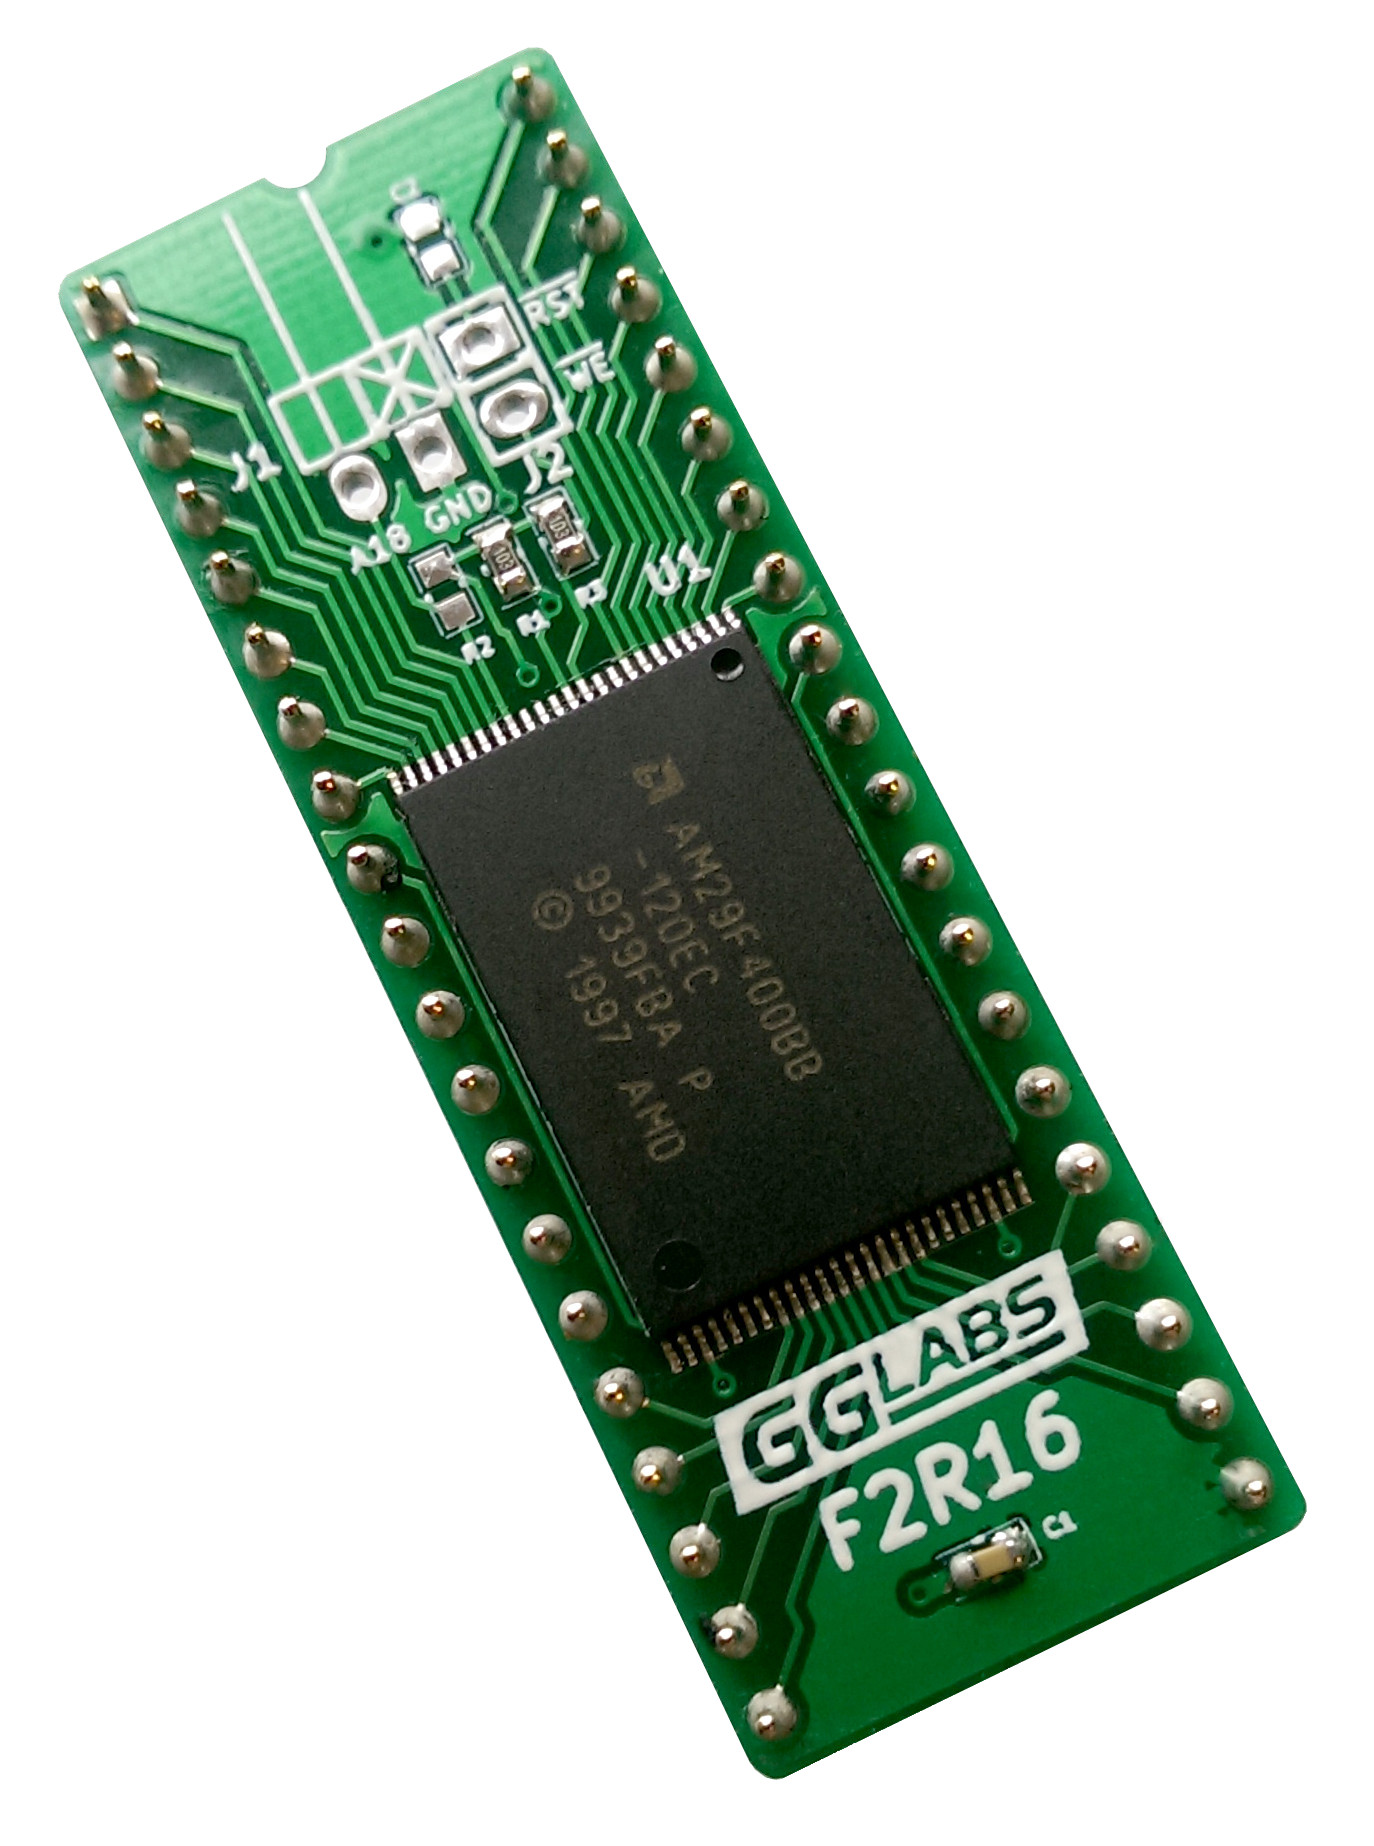 F2R16-A00 - Flash based ROM Replacement for Amiga Computers | gglabs us